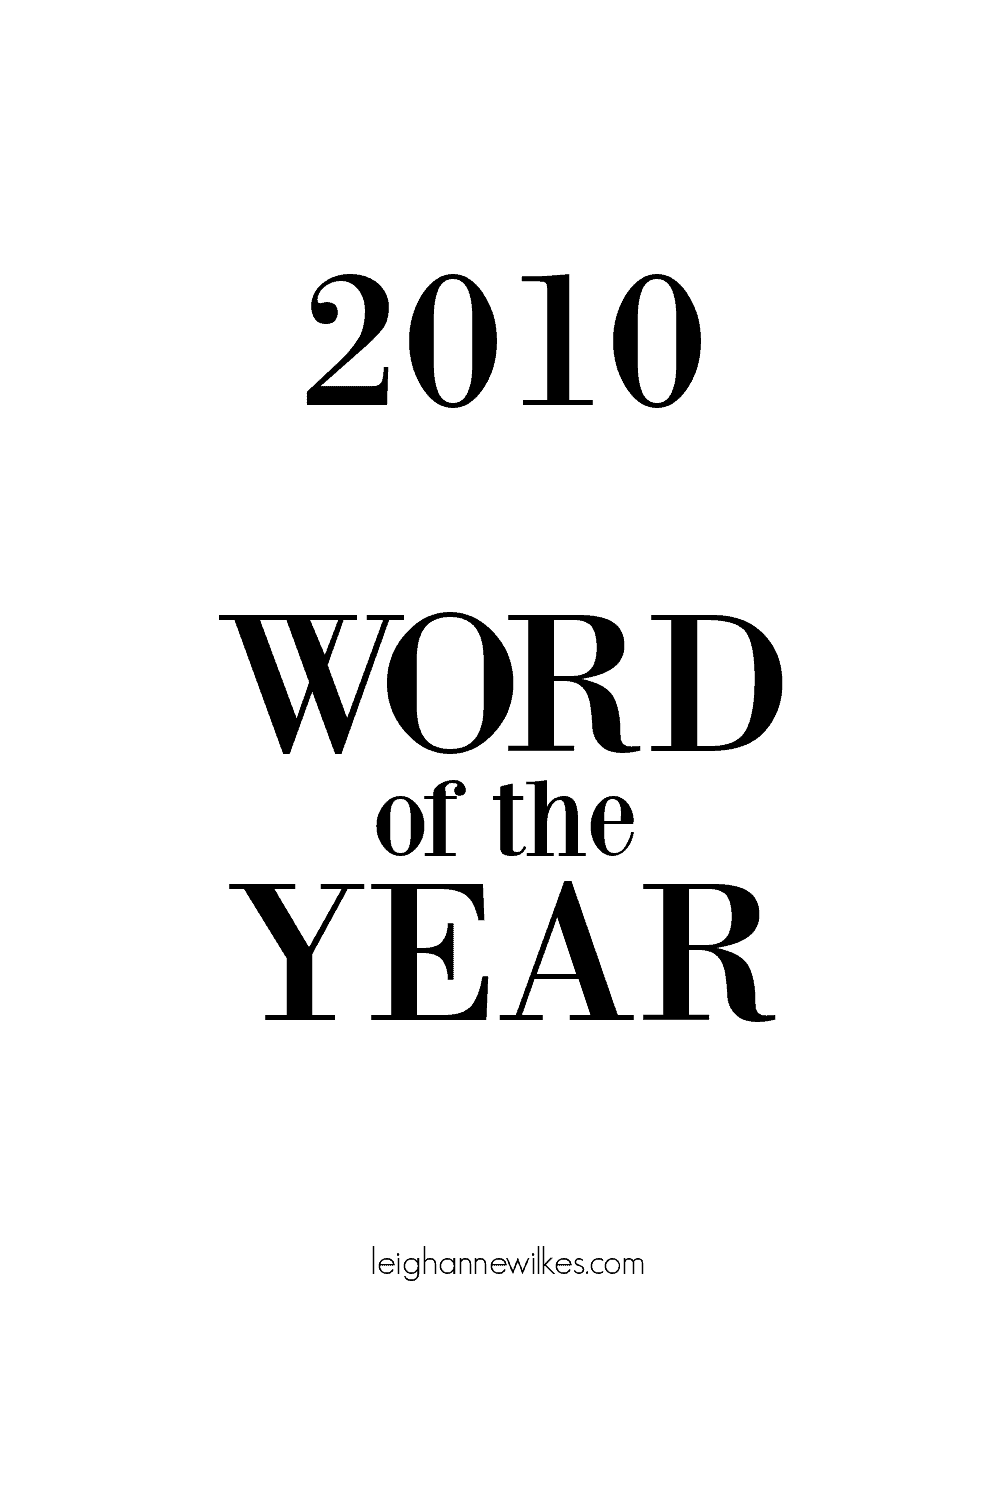 2010 word of the year